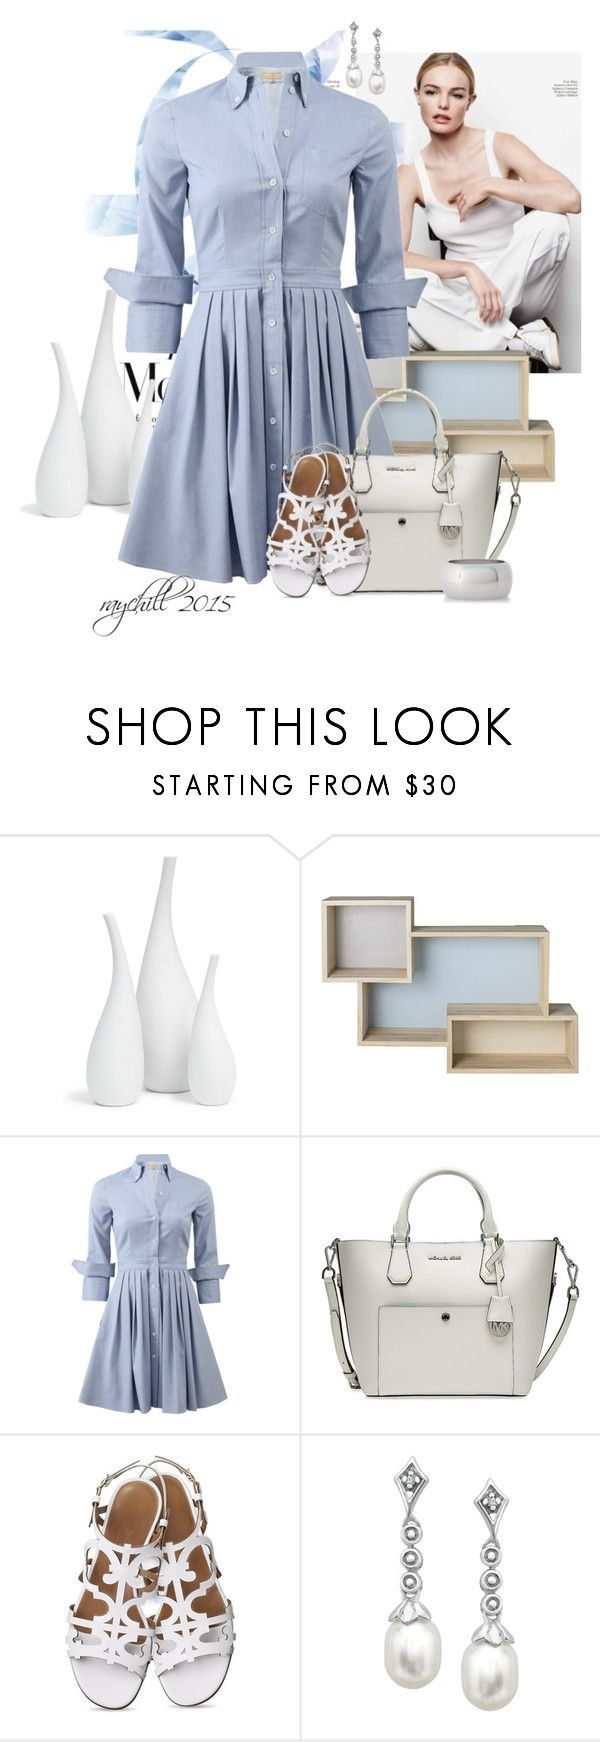 """crisp..."" by raychill3 ❤ liked on Polyvore featuring Mitchell Gold + Bob Williams, Bloomingville, Michael Kors, MICHAEL Michael Kors, Express and shirtdress"